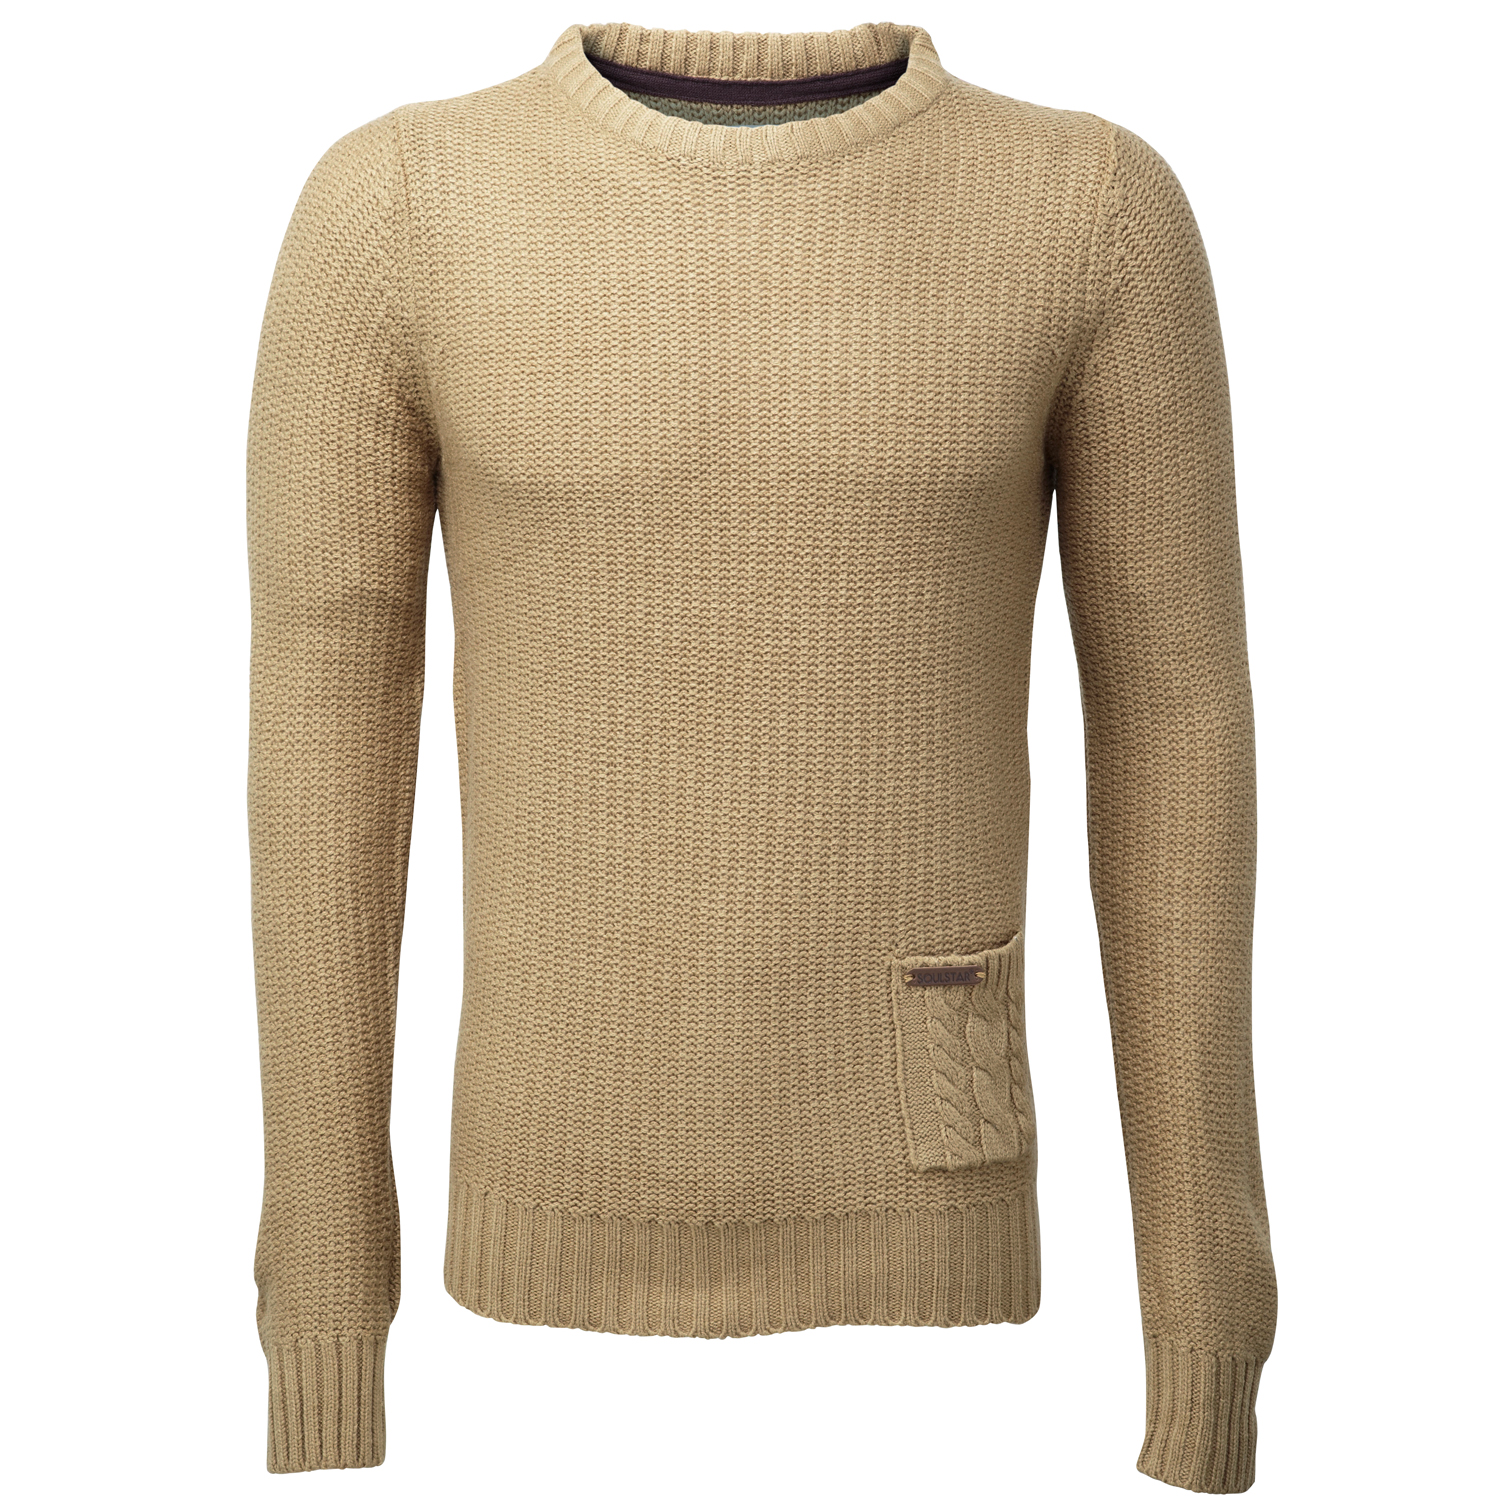 Soul Star Mens Knitted Crew Neck Jumper Pullover Sweater Top New Ebay